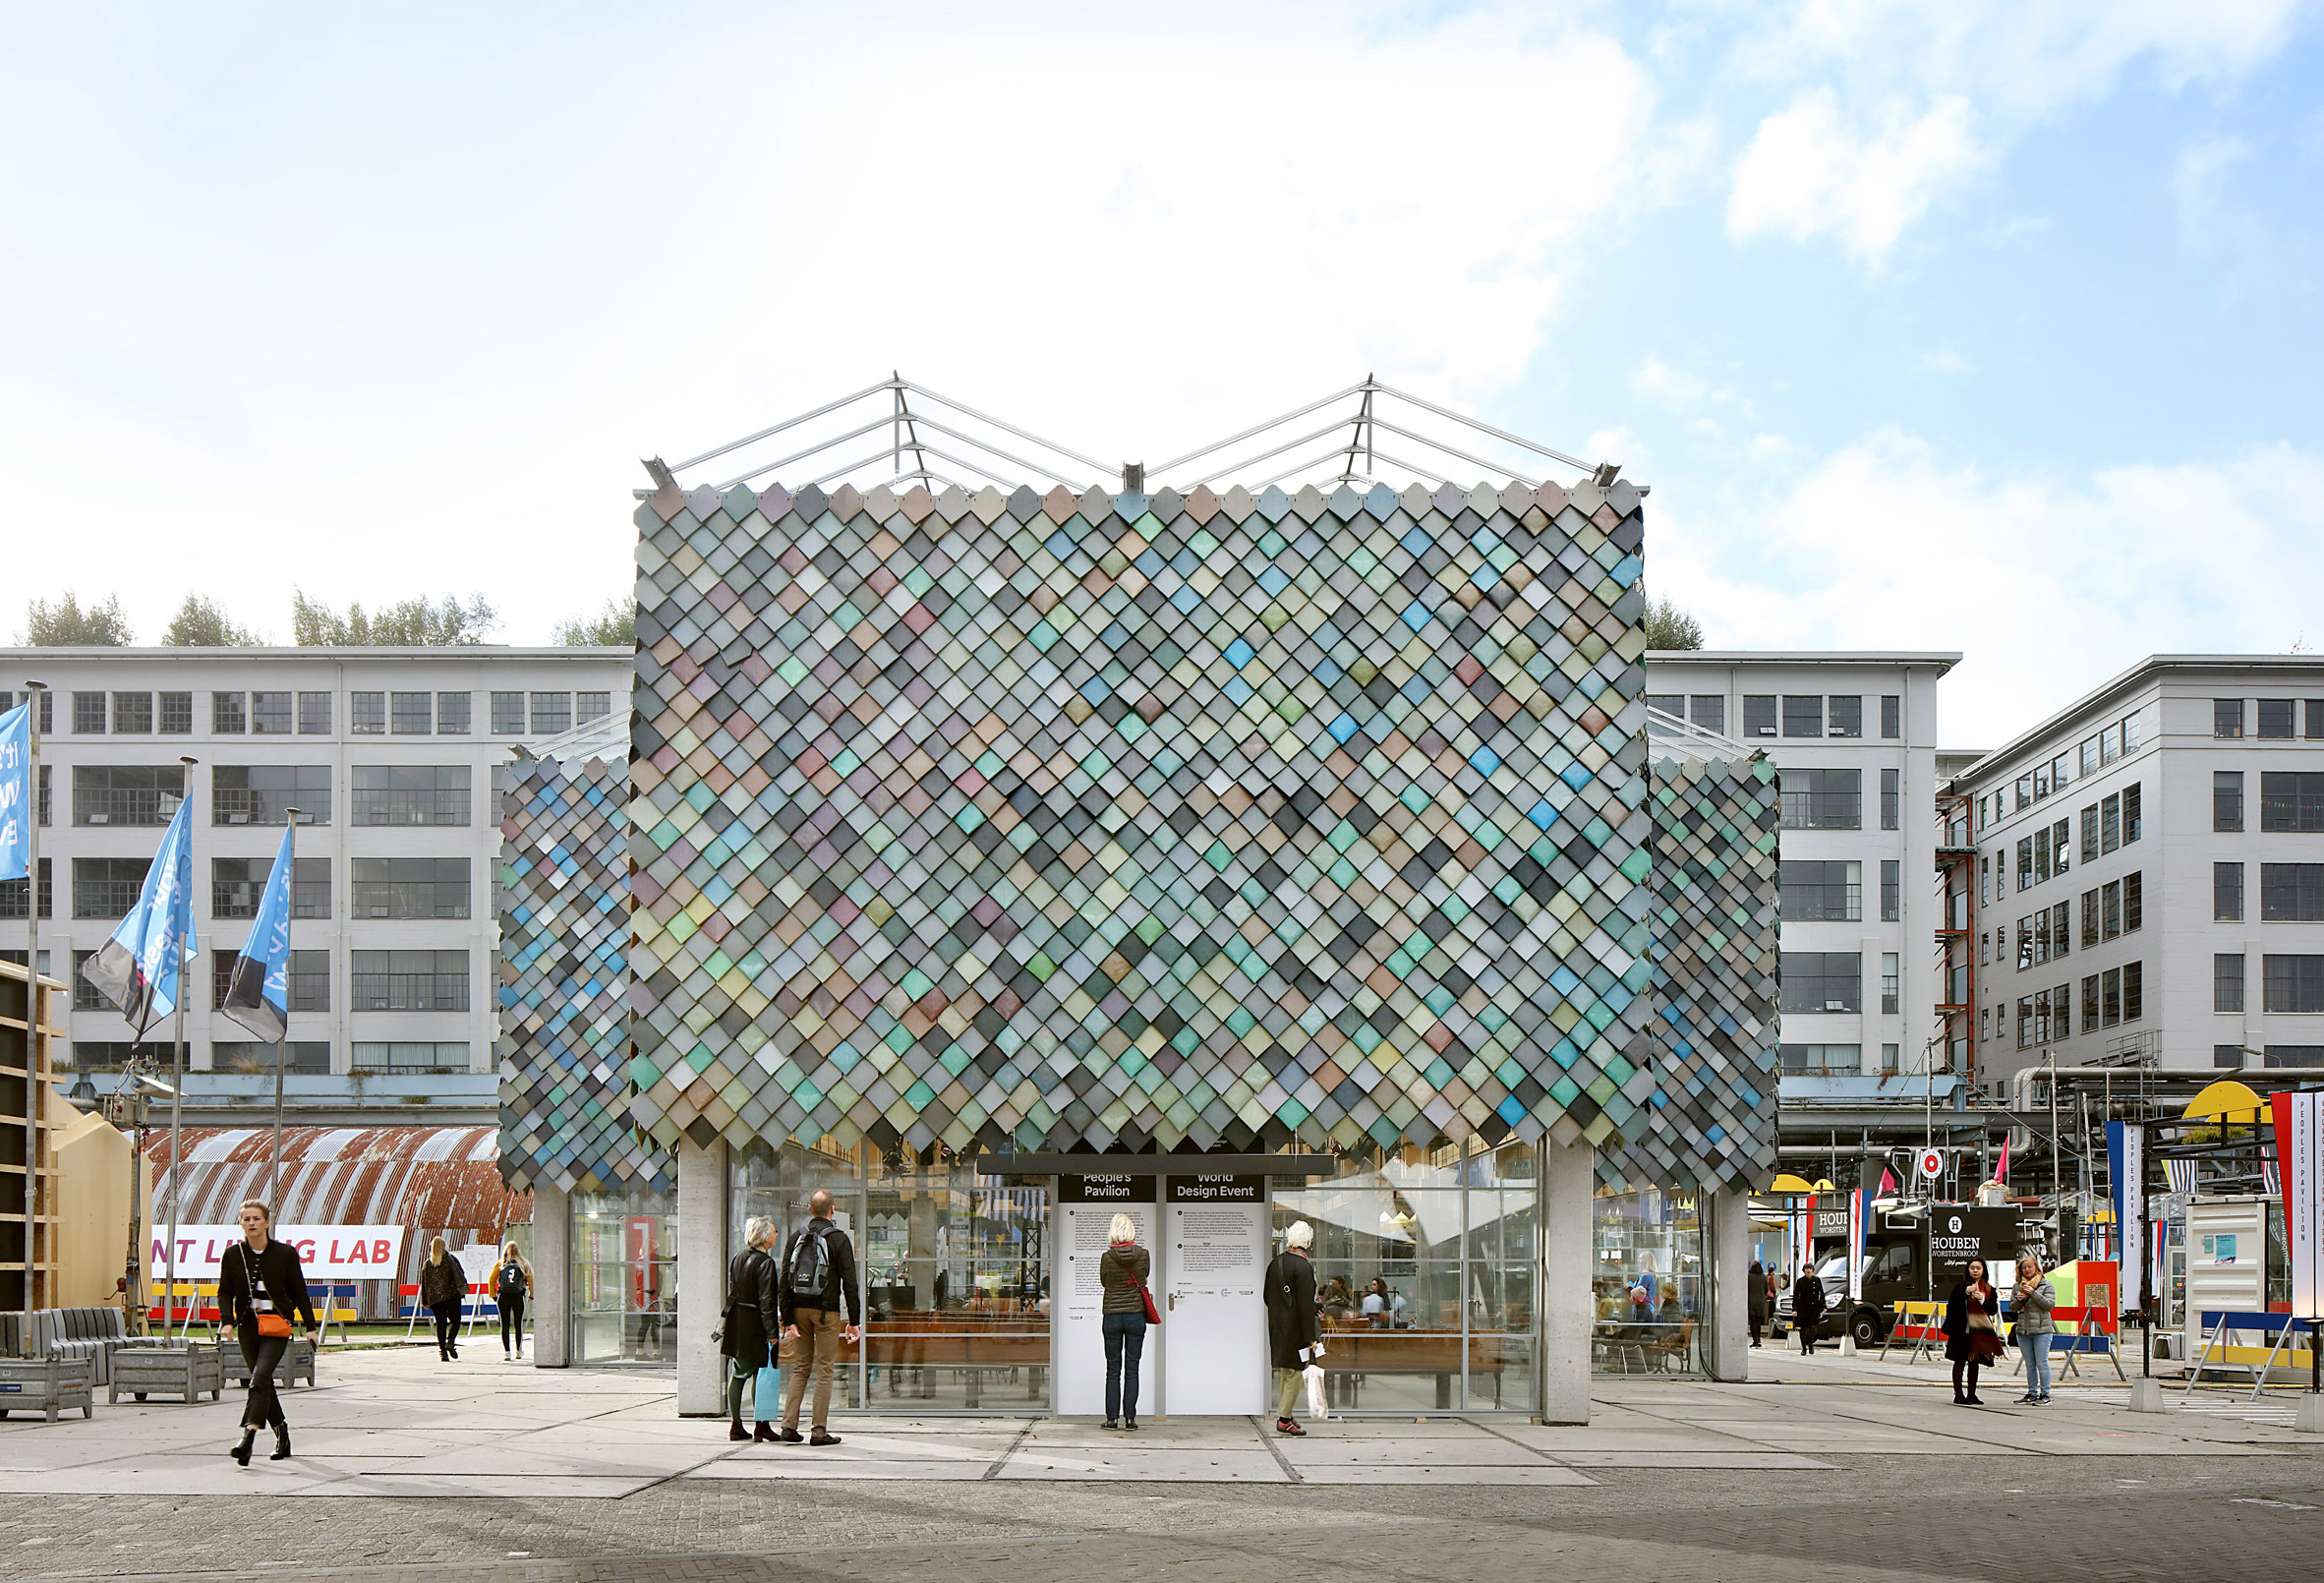 People's Pavilion by Overtreders W and Bureau SLA